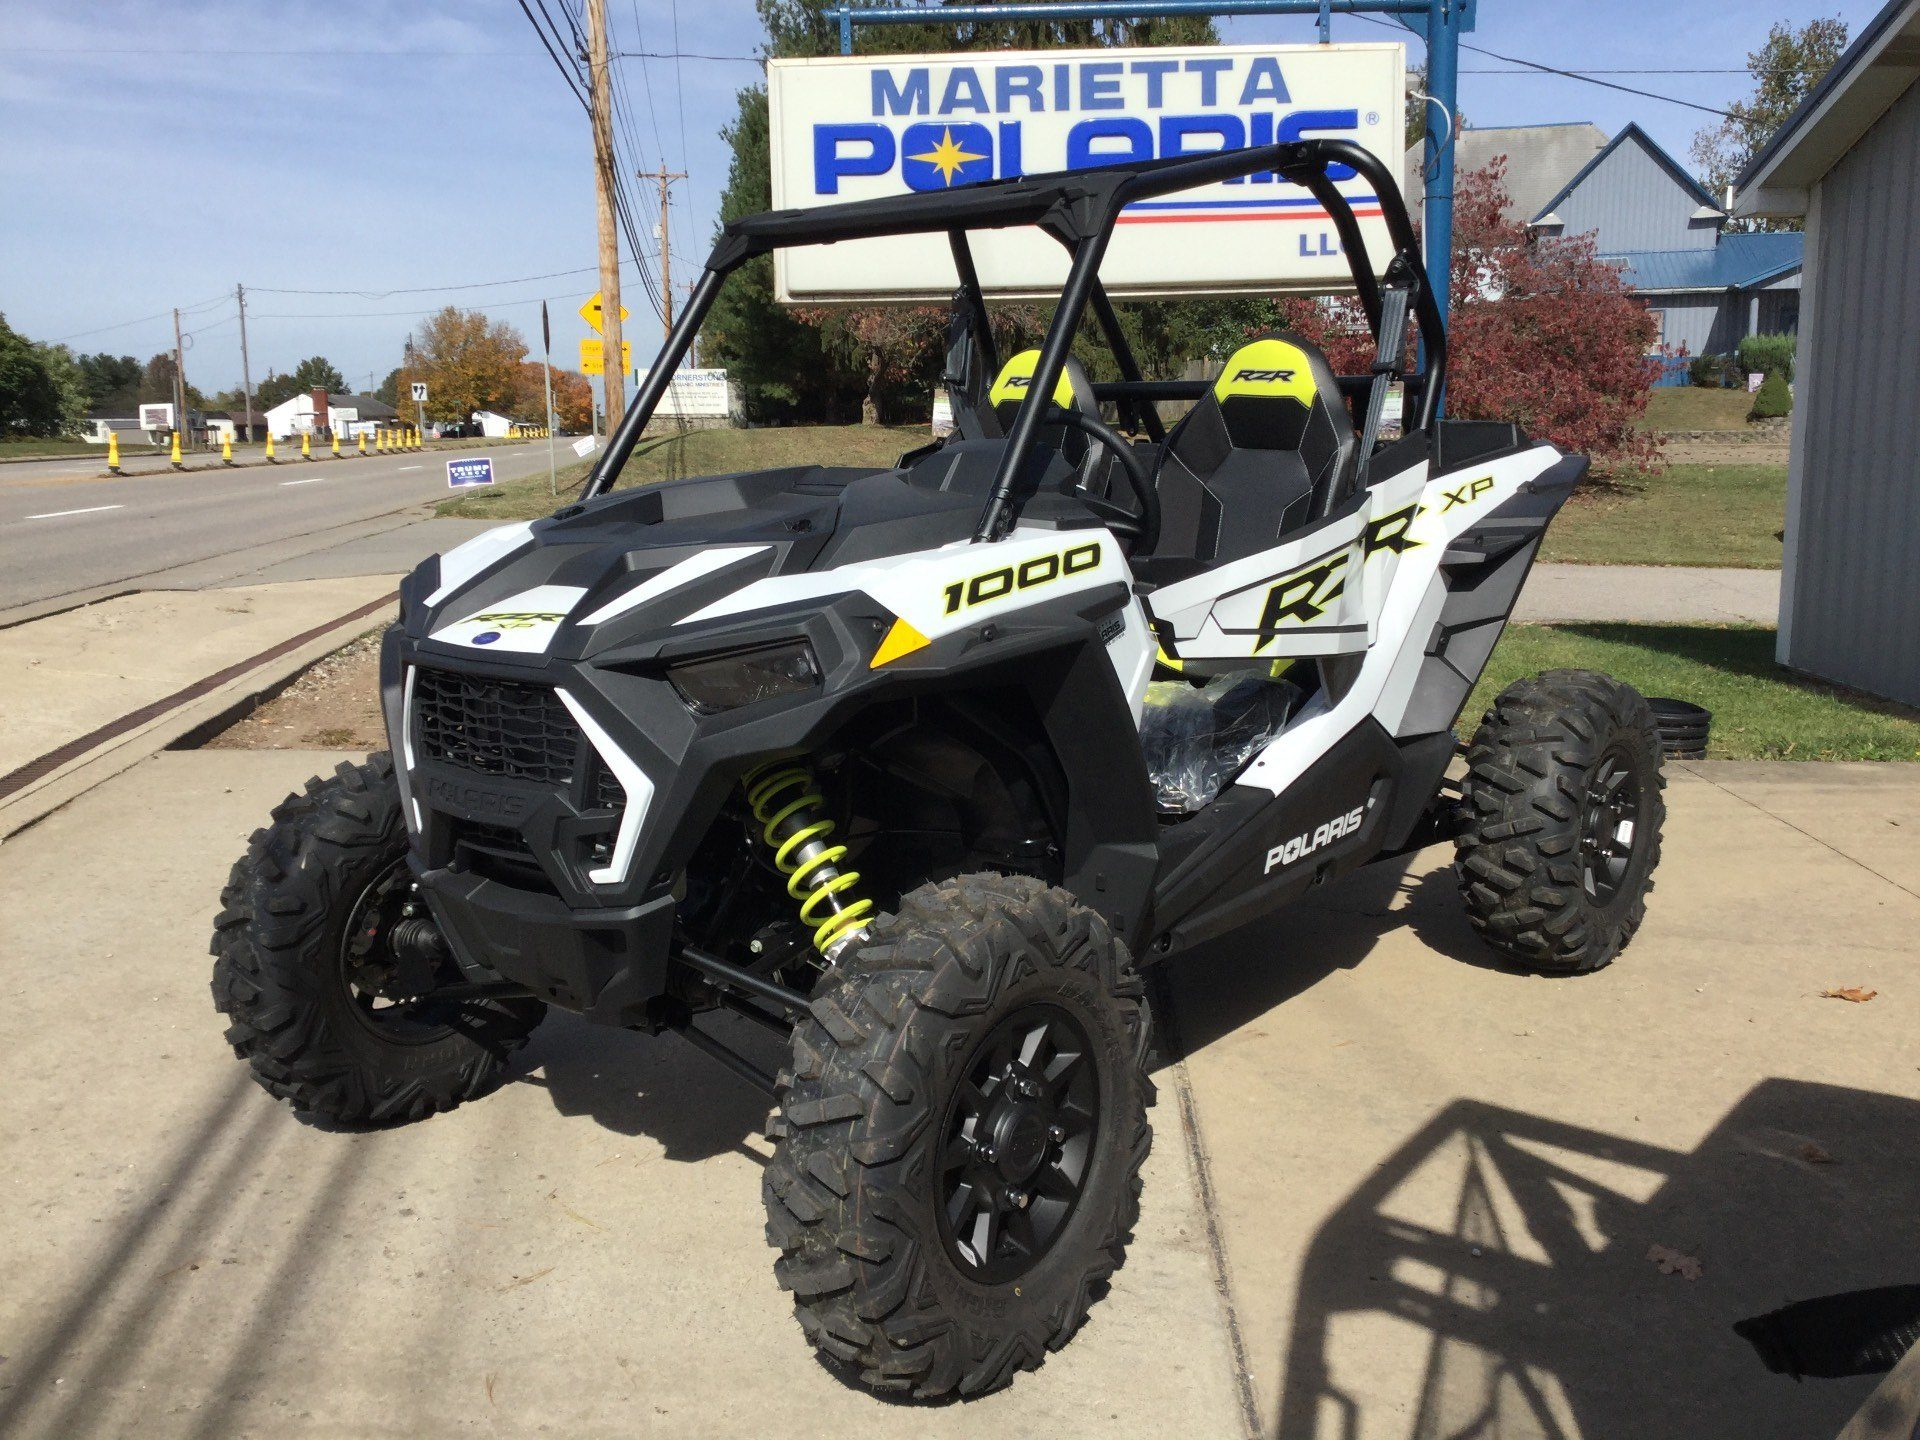 2021 Polaris RZR XP 1000 Sport in Marietta, Ohio - Photo 2